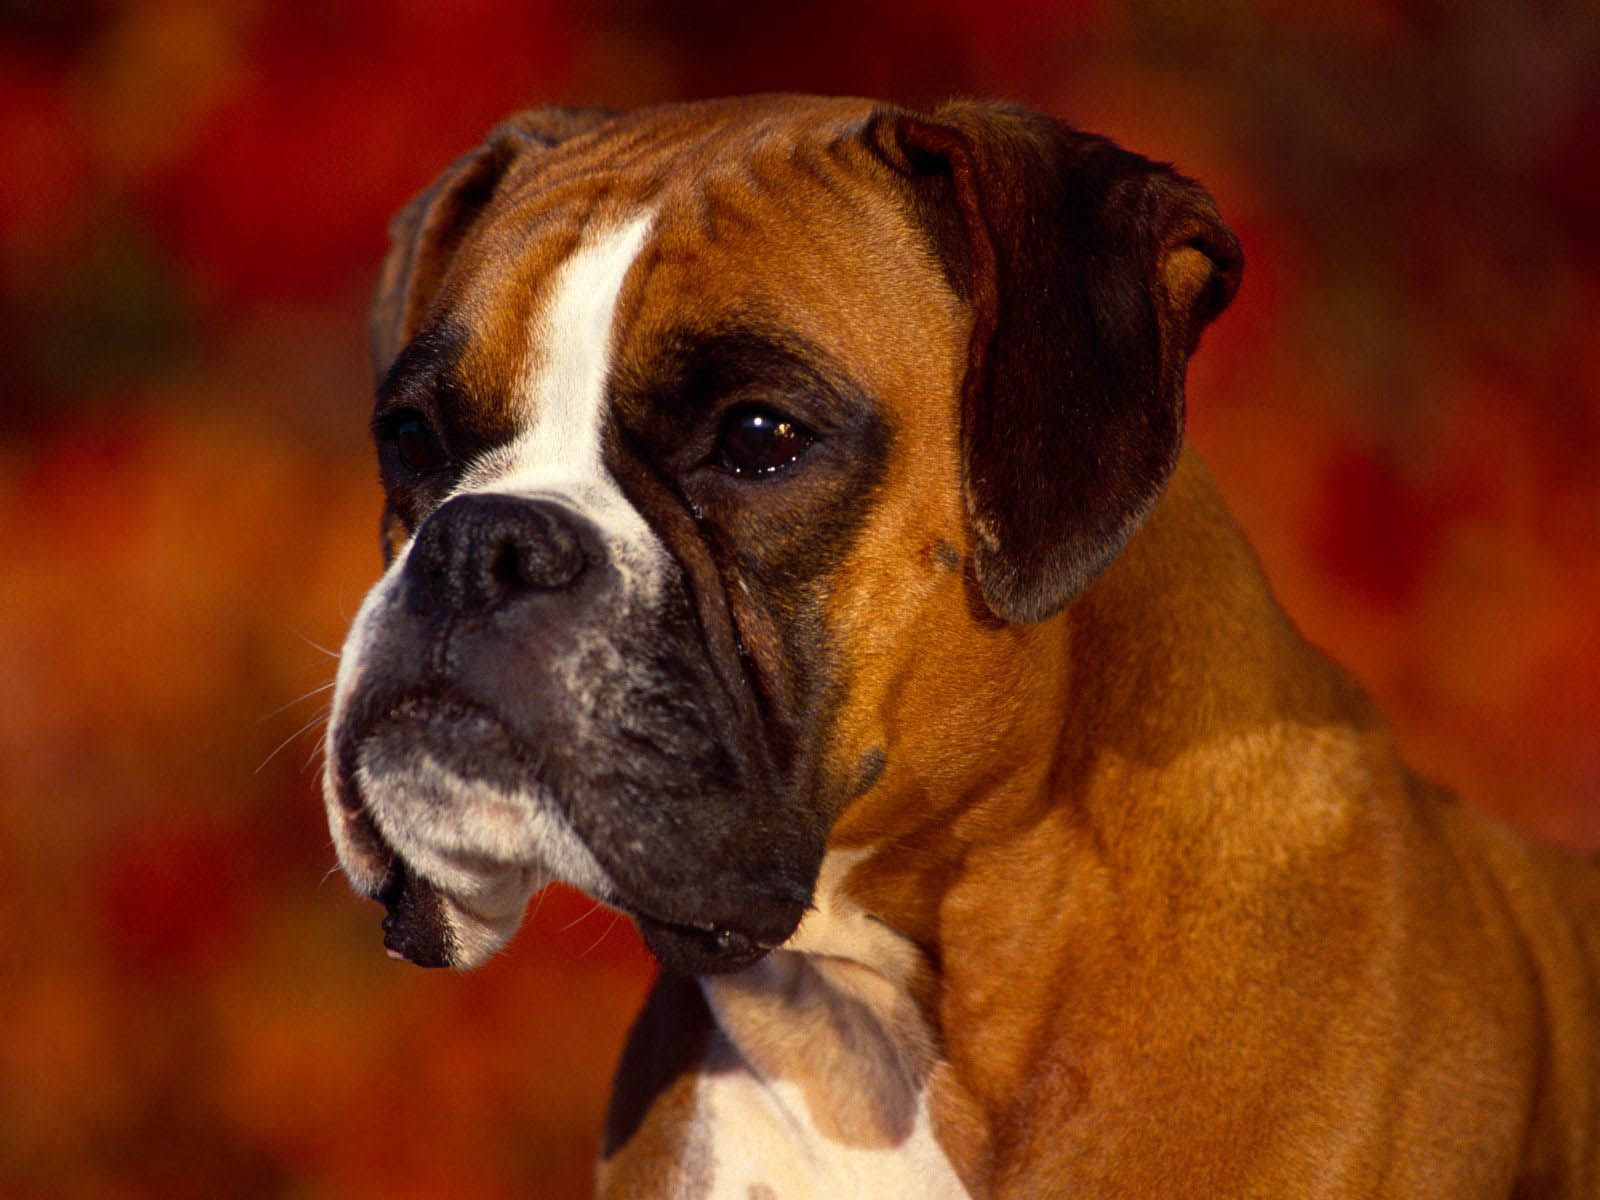 The Boxer Is A Breed Of Medium Sized Short Haired Dogs Developed In Germany Boxer Dogs Boxer Dog Pictures Boxer Dog Puppy